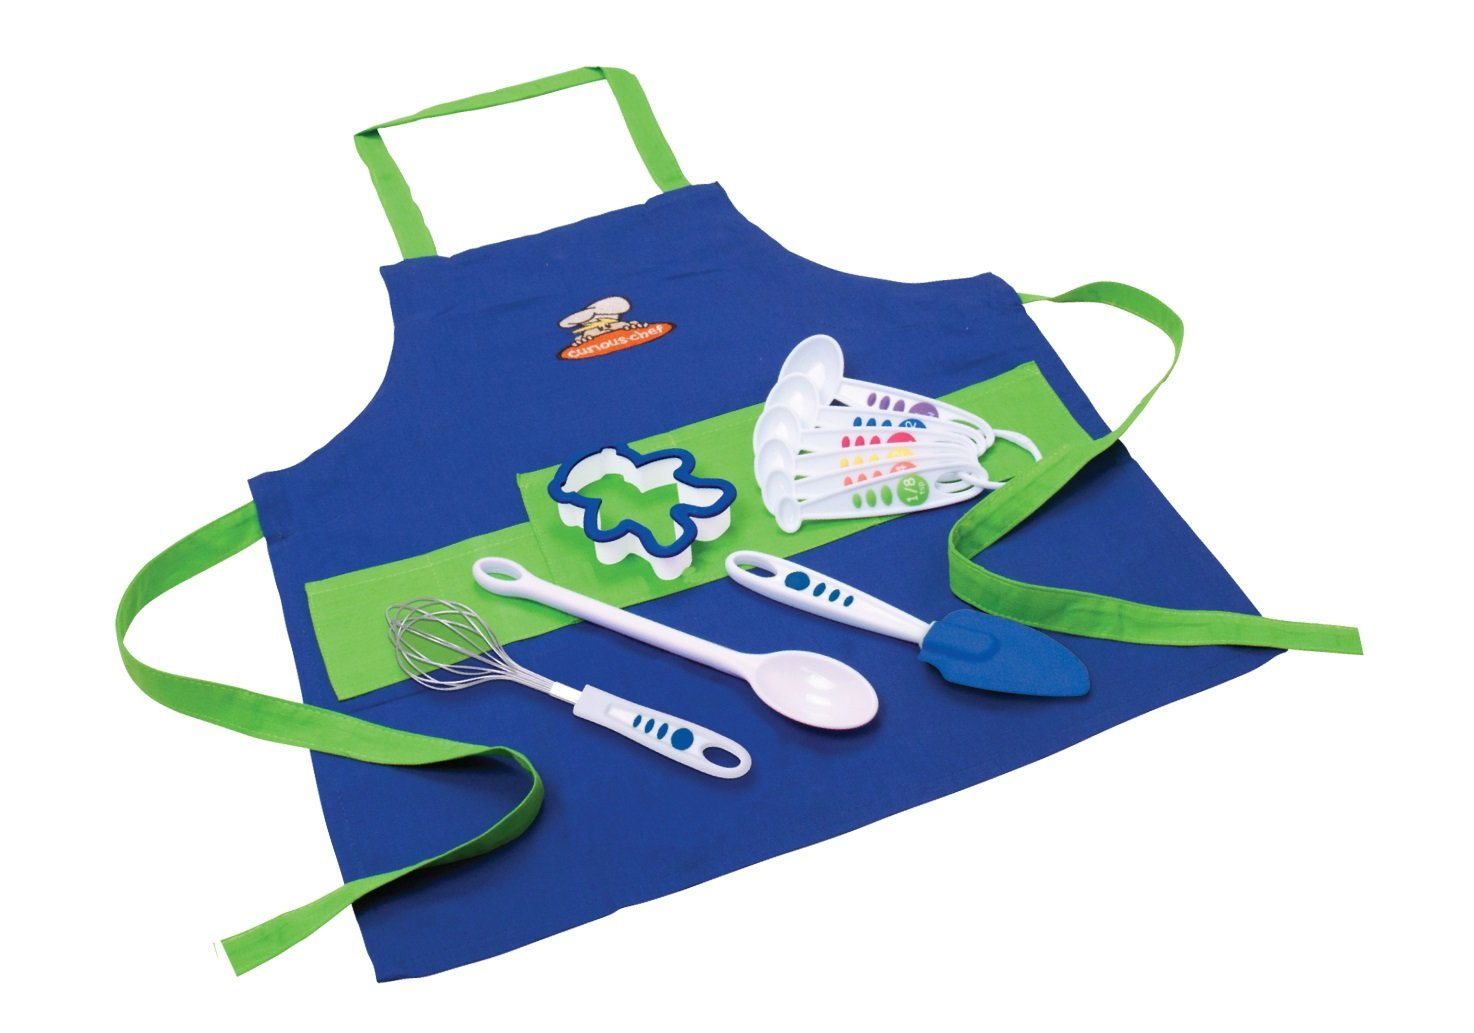 Curious Chef Chef's Kit, 11-Piece, Blue/Green by Curious Chef